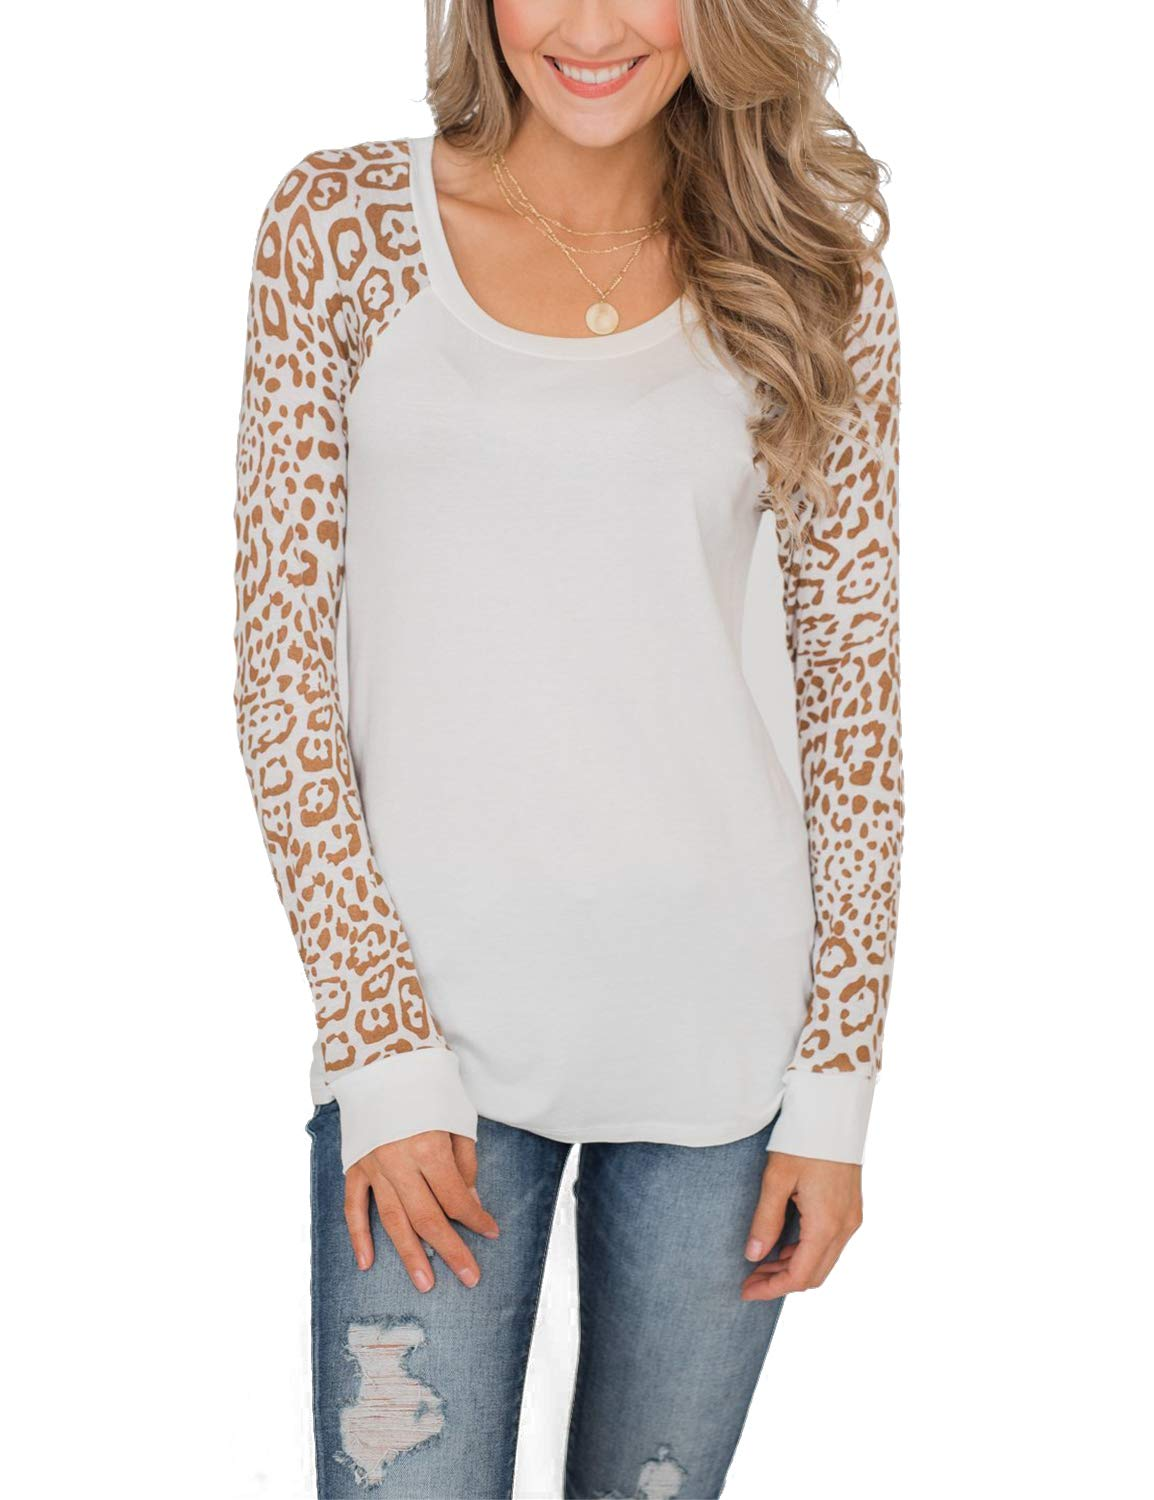 BMJL Women's Leopard Print Round Neck Shirt Raglan Sleeve Top Tee White